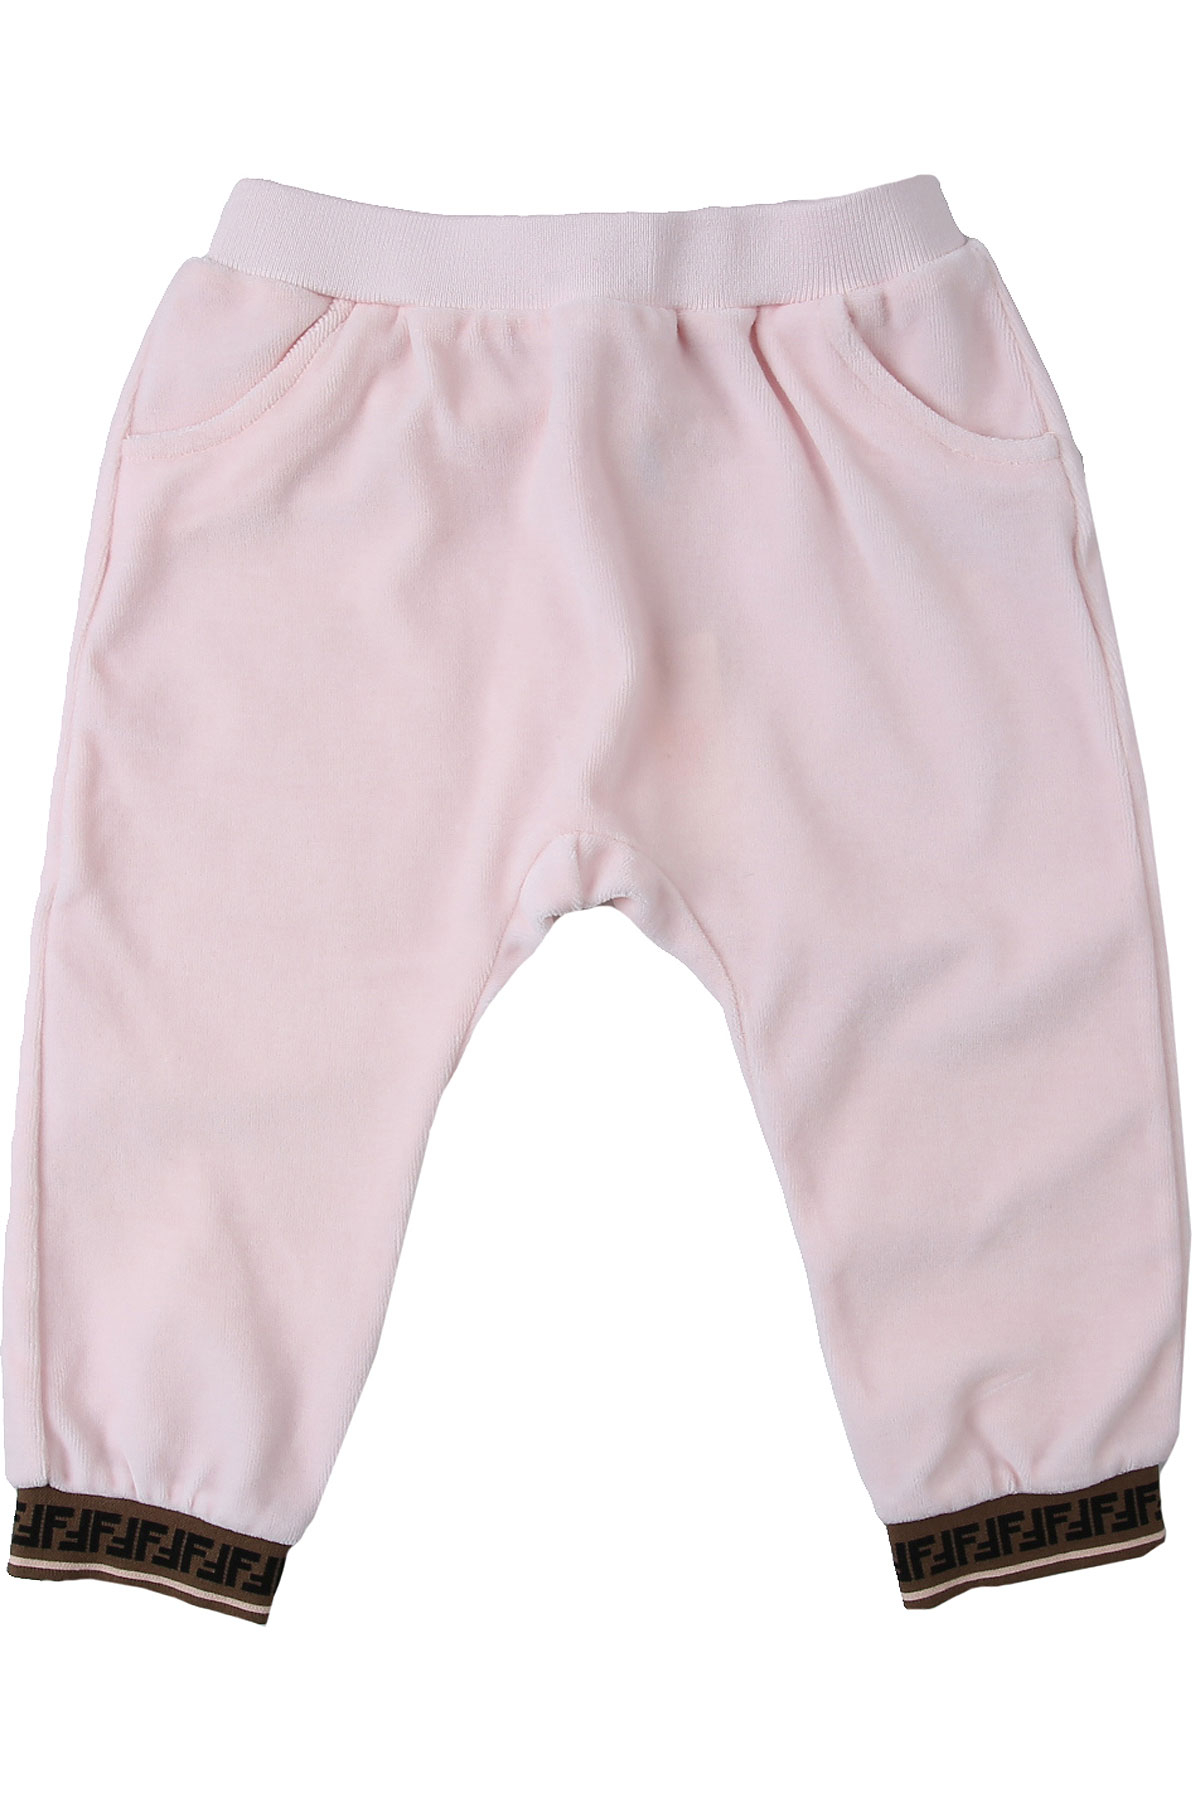 Fendi Baby Sweatpants for Girls On Sale, Pink, Cotton, 2019, 12M 18M 2Y